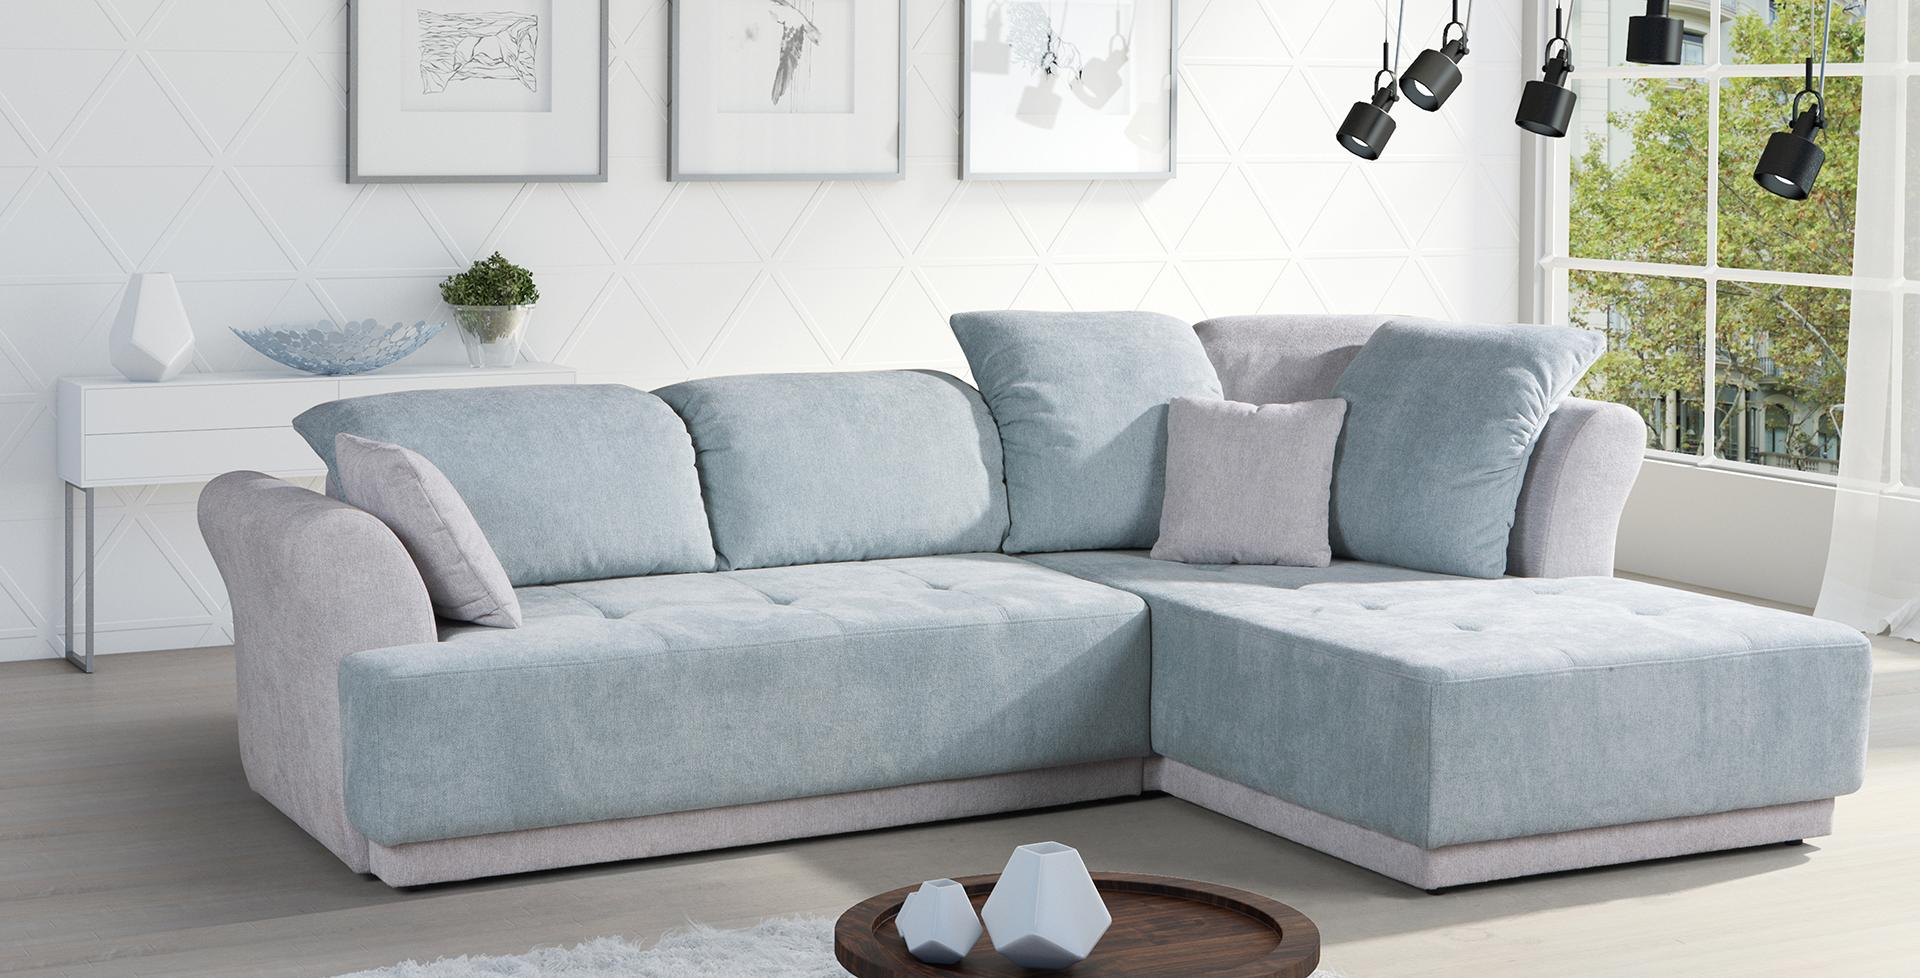 sofa schlafsofa designer sofa mit bettfunktion bettkasten ecksofa couch neu pure www. Black Bedroom Furniture Sets. Home Design Ideas